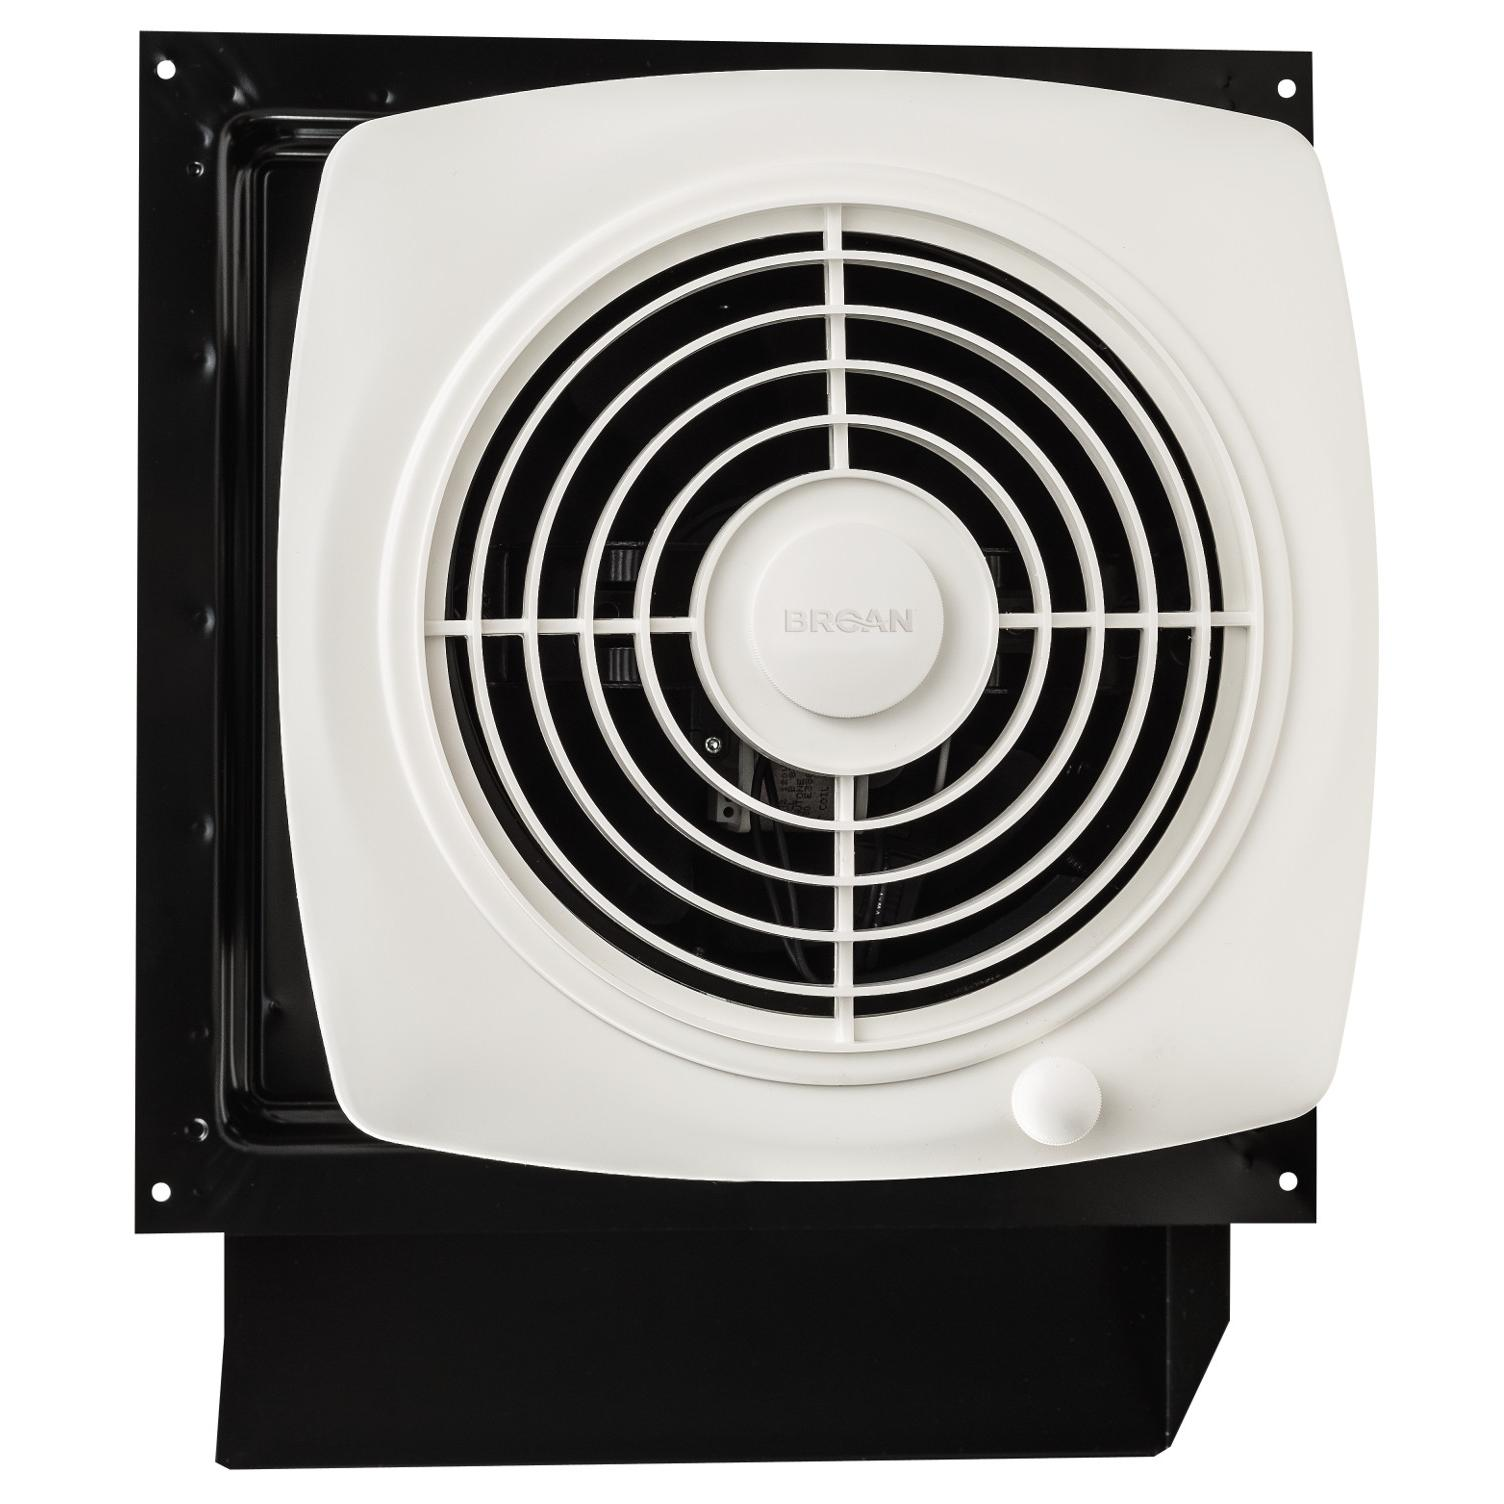 Through Wall Ventilation Fan : Broan through wall fan cfm sones white